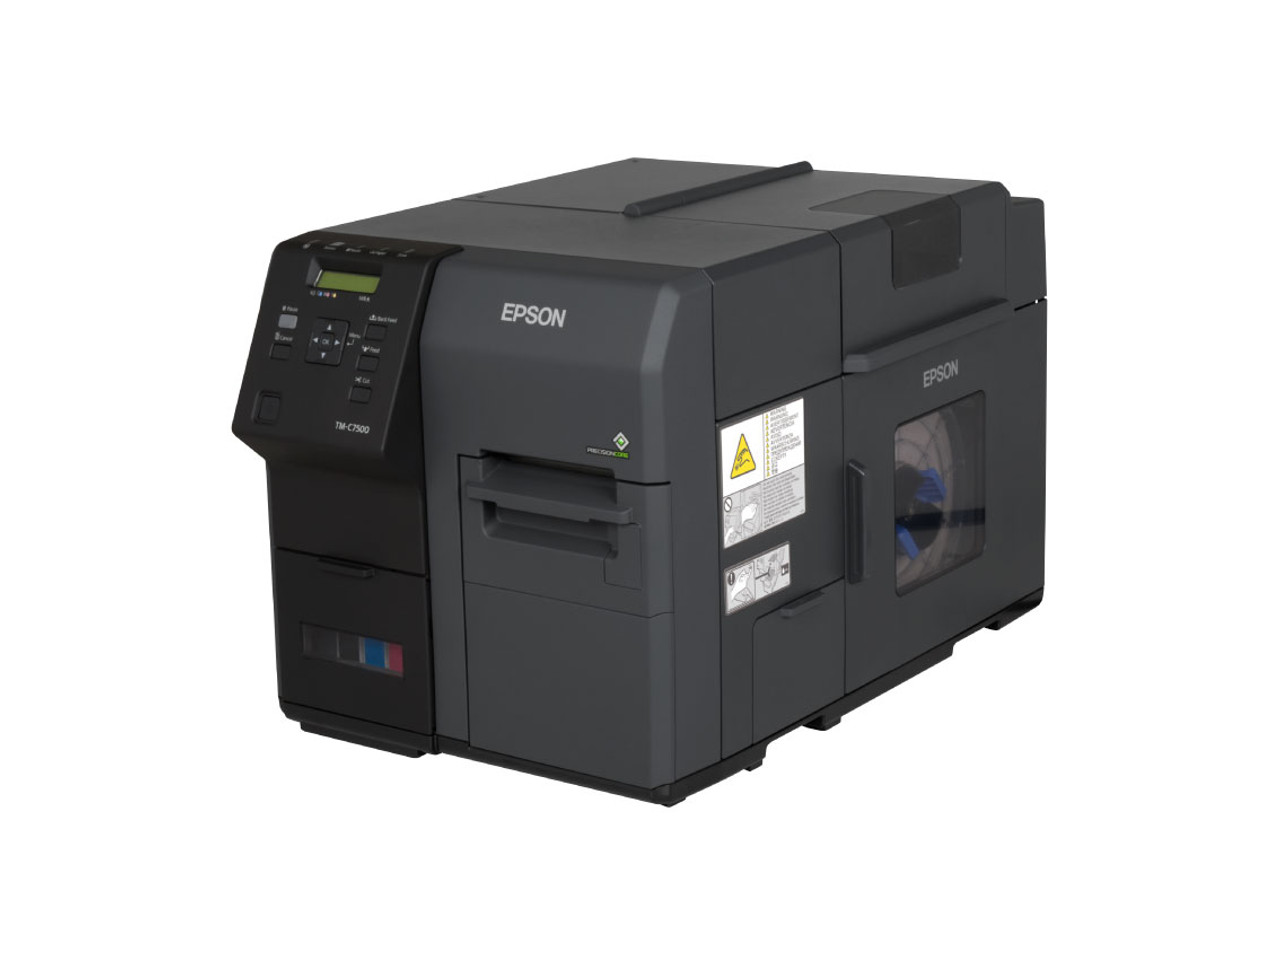 Epson TM-C7500 GHS BS5609 Label Printer